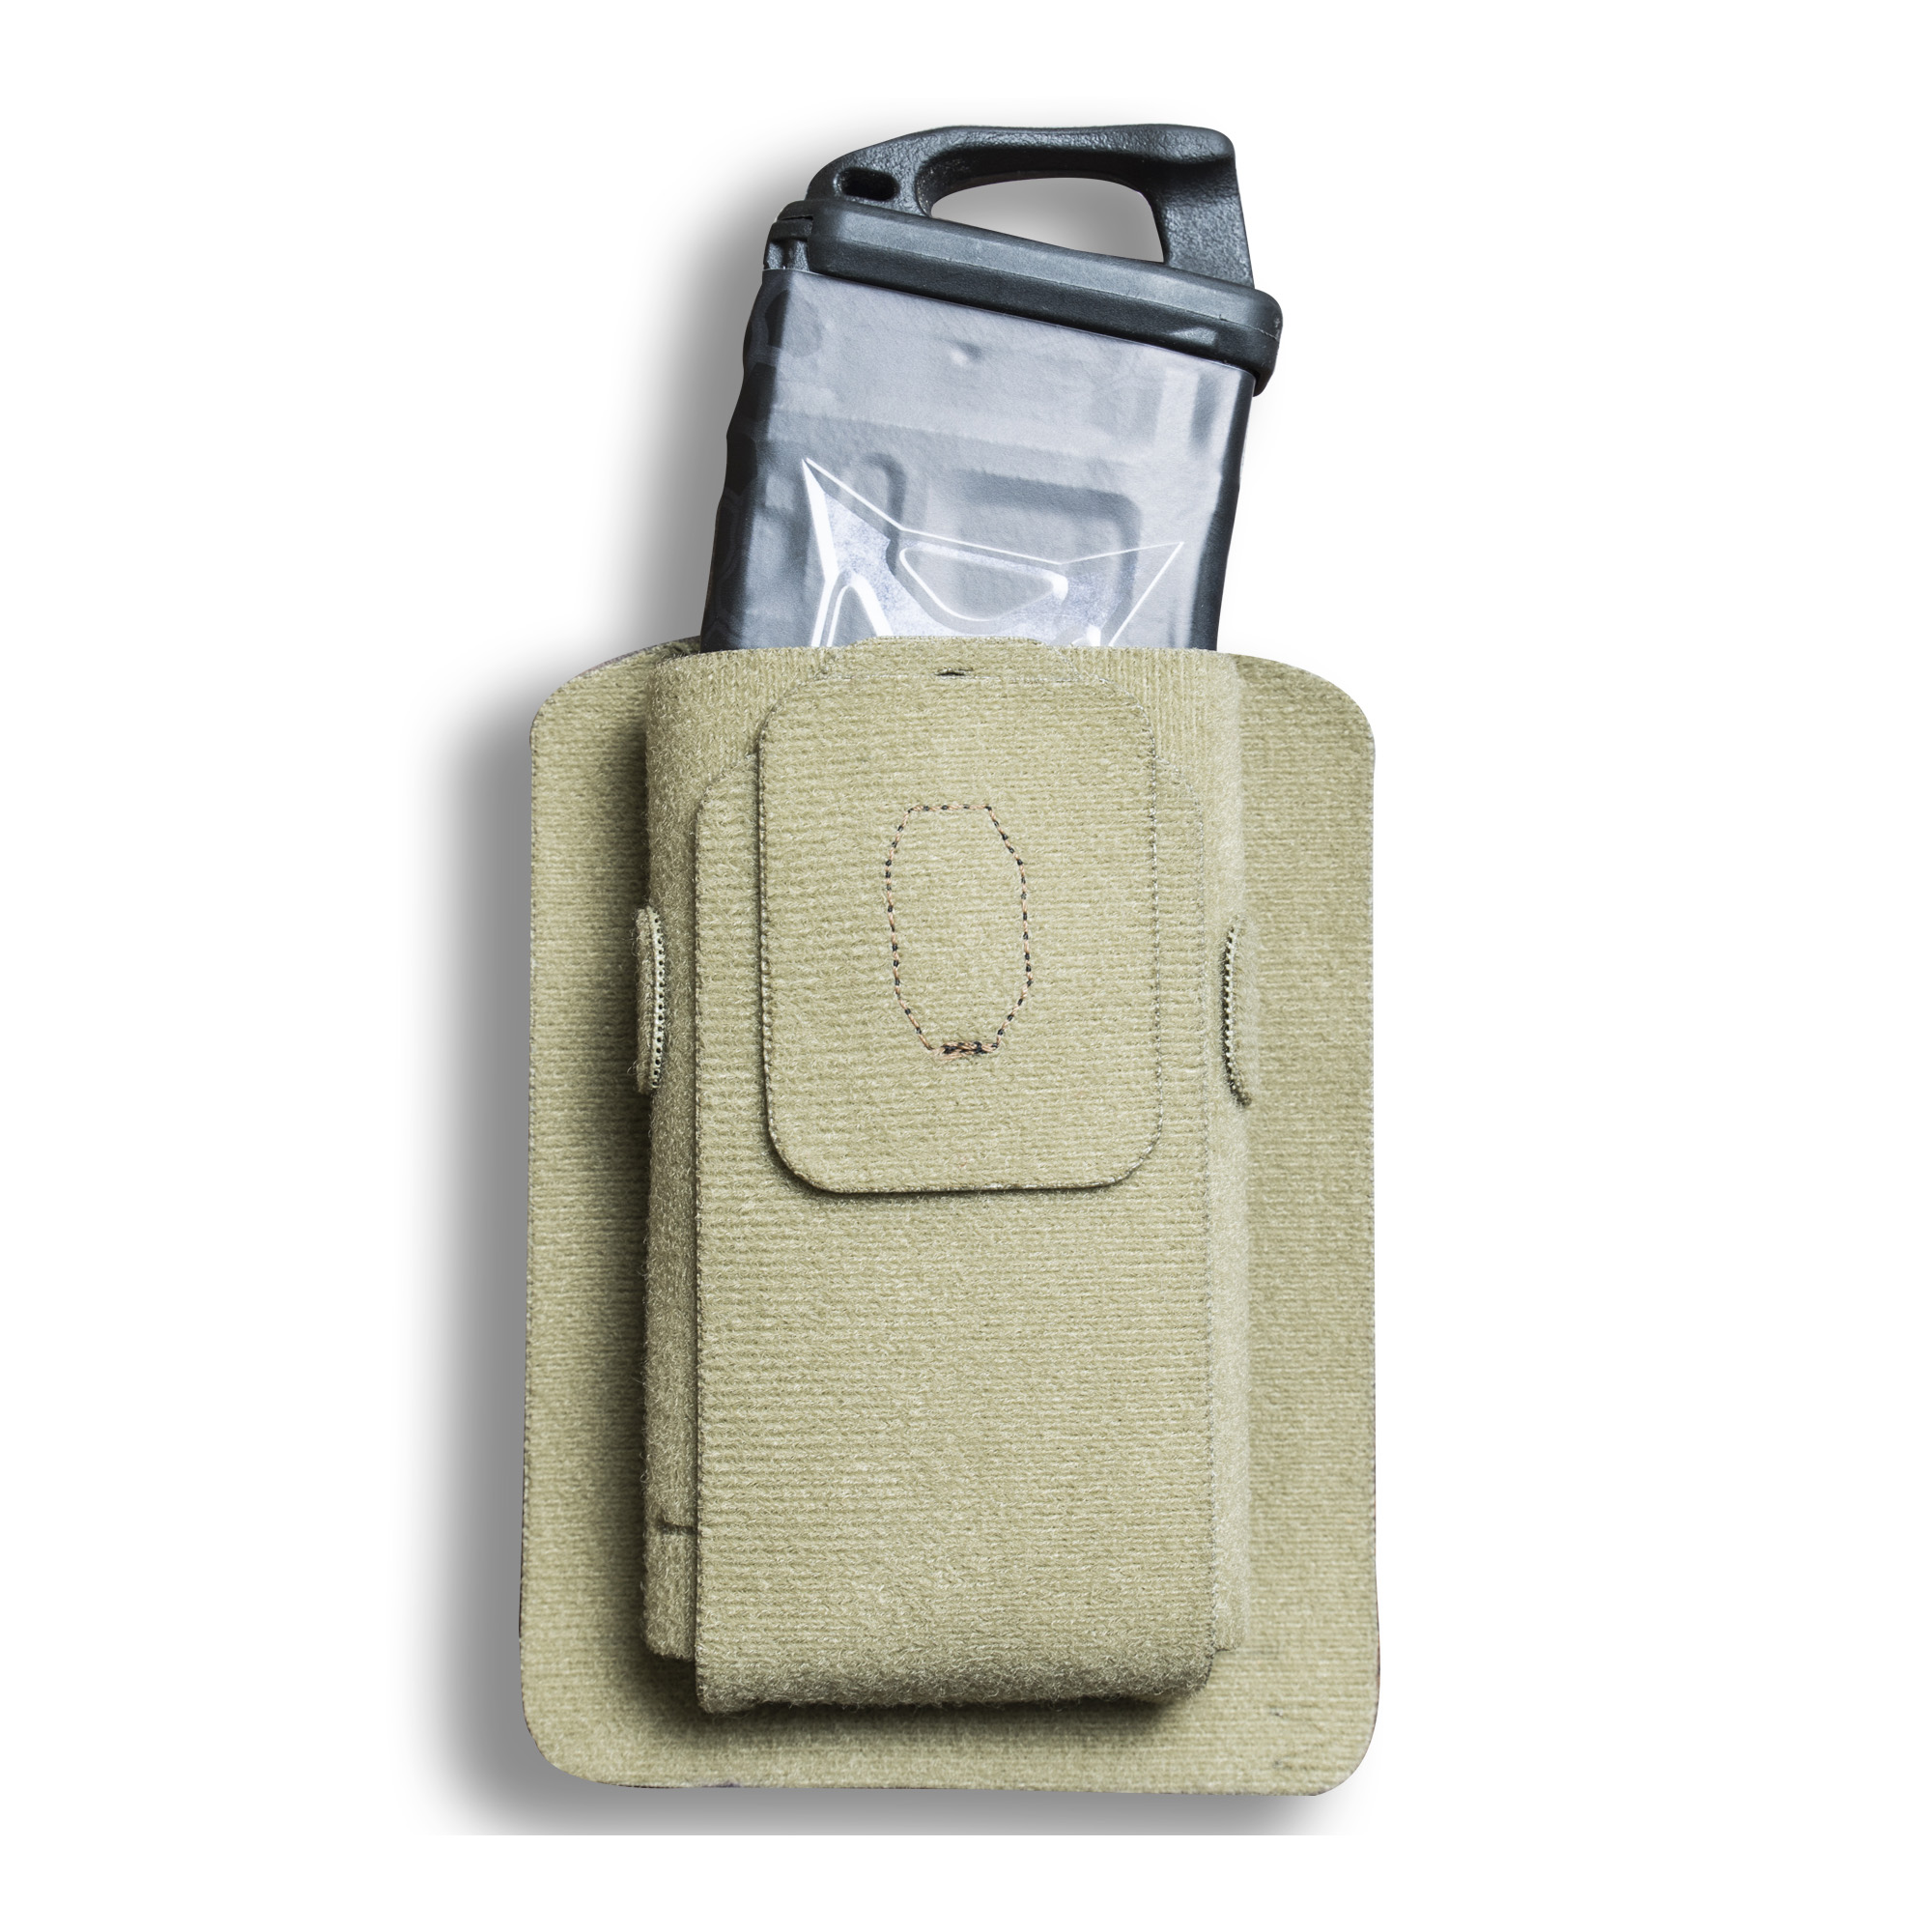 "Experience the unique storage options of Vertx(R) Tactigami with the MAK Standard accessory system. MAK stands for MAGs and Kit"" meaning their patent pending wrap adapts to fit smaller gear"" from MAGs to flashlights"" cell phones and more. Built from Velcro(R) One-Wrap(R)"" this accessory piece literally wraps around your item for a completely customized fit"" then attaches to loop panel for unparalleled organizational capability. Pair with any of the Vertx(R) bags and packs for everyday carry options and ultimate concealment. The MAK Full is sized to fit larger items such as rifle magazines"" smartphones and flash bangs."